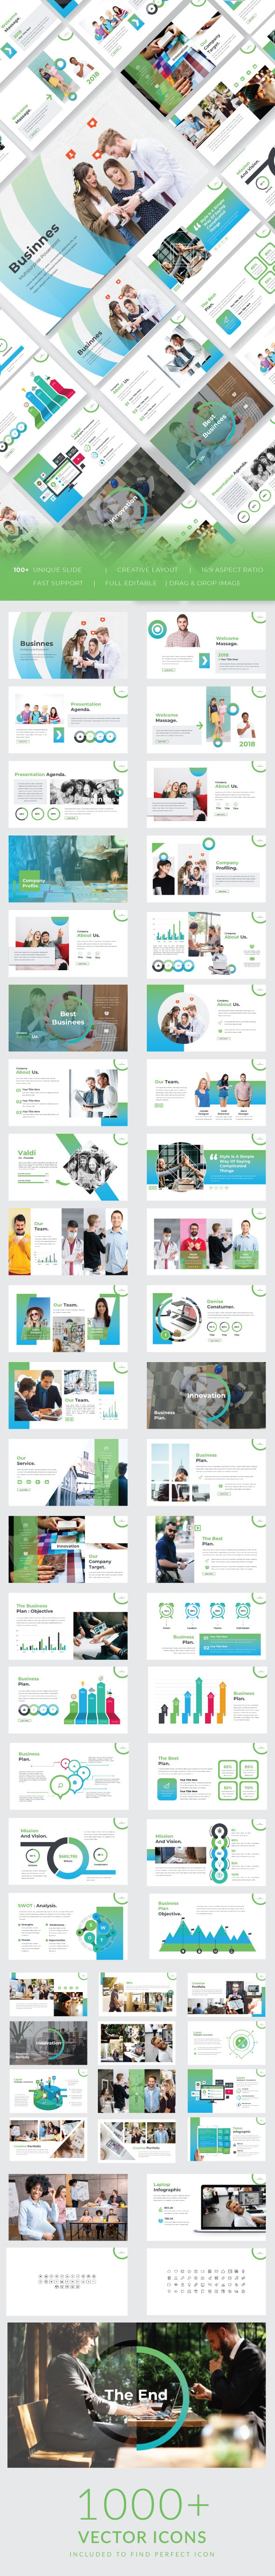 Multipurpose Business Template - Business PowerPoint Templates